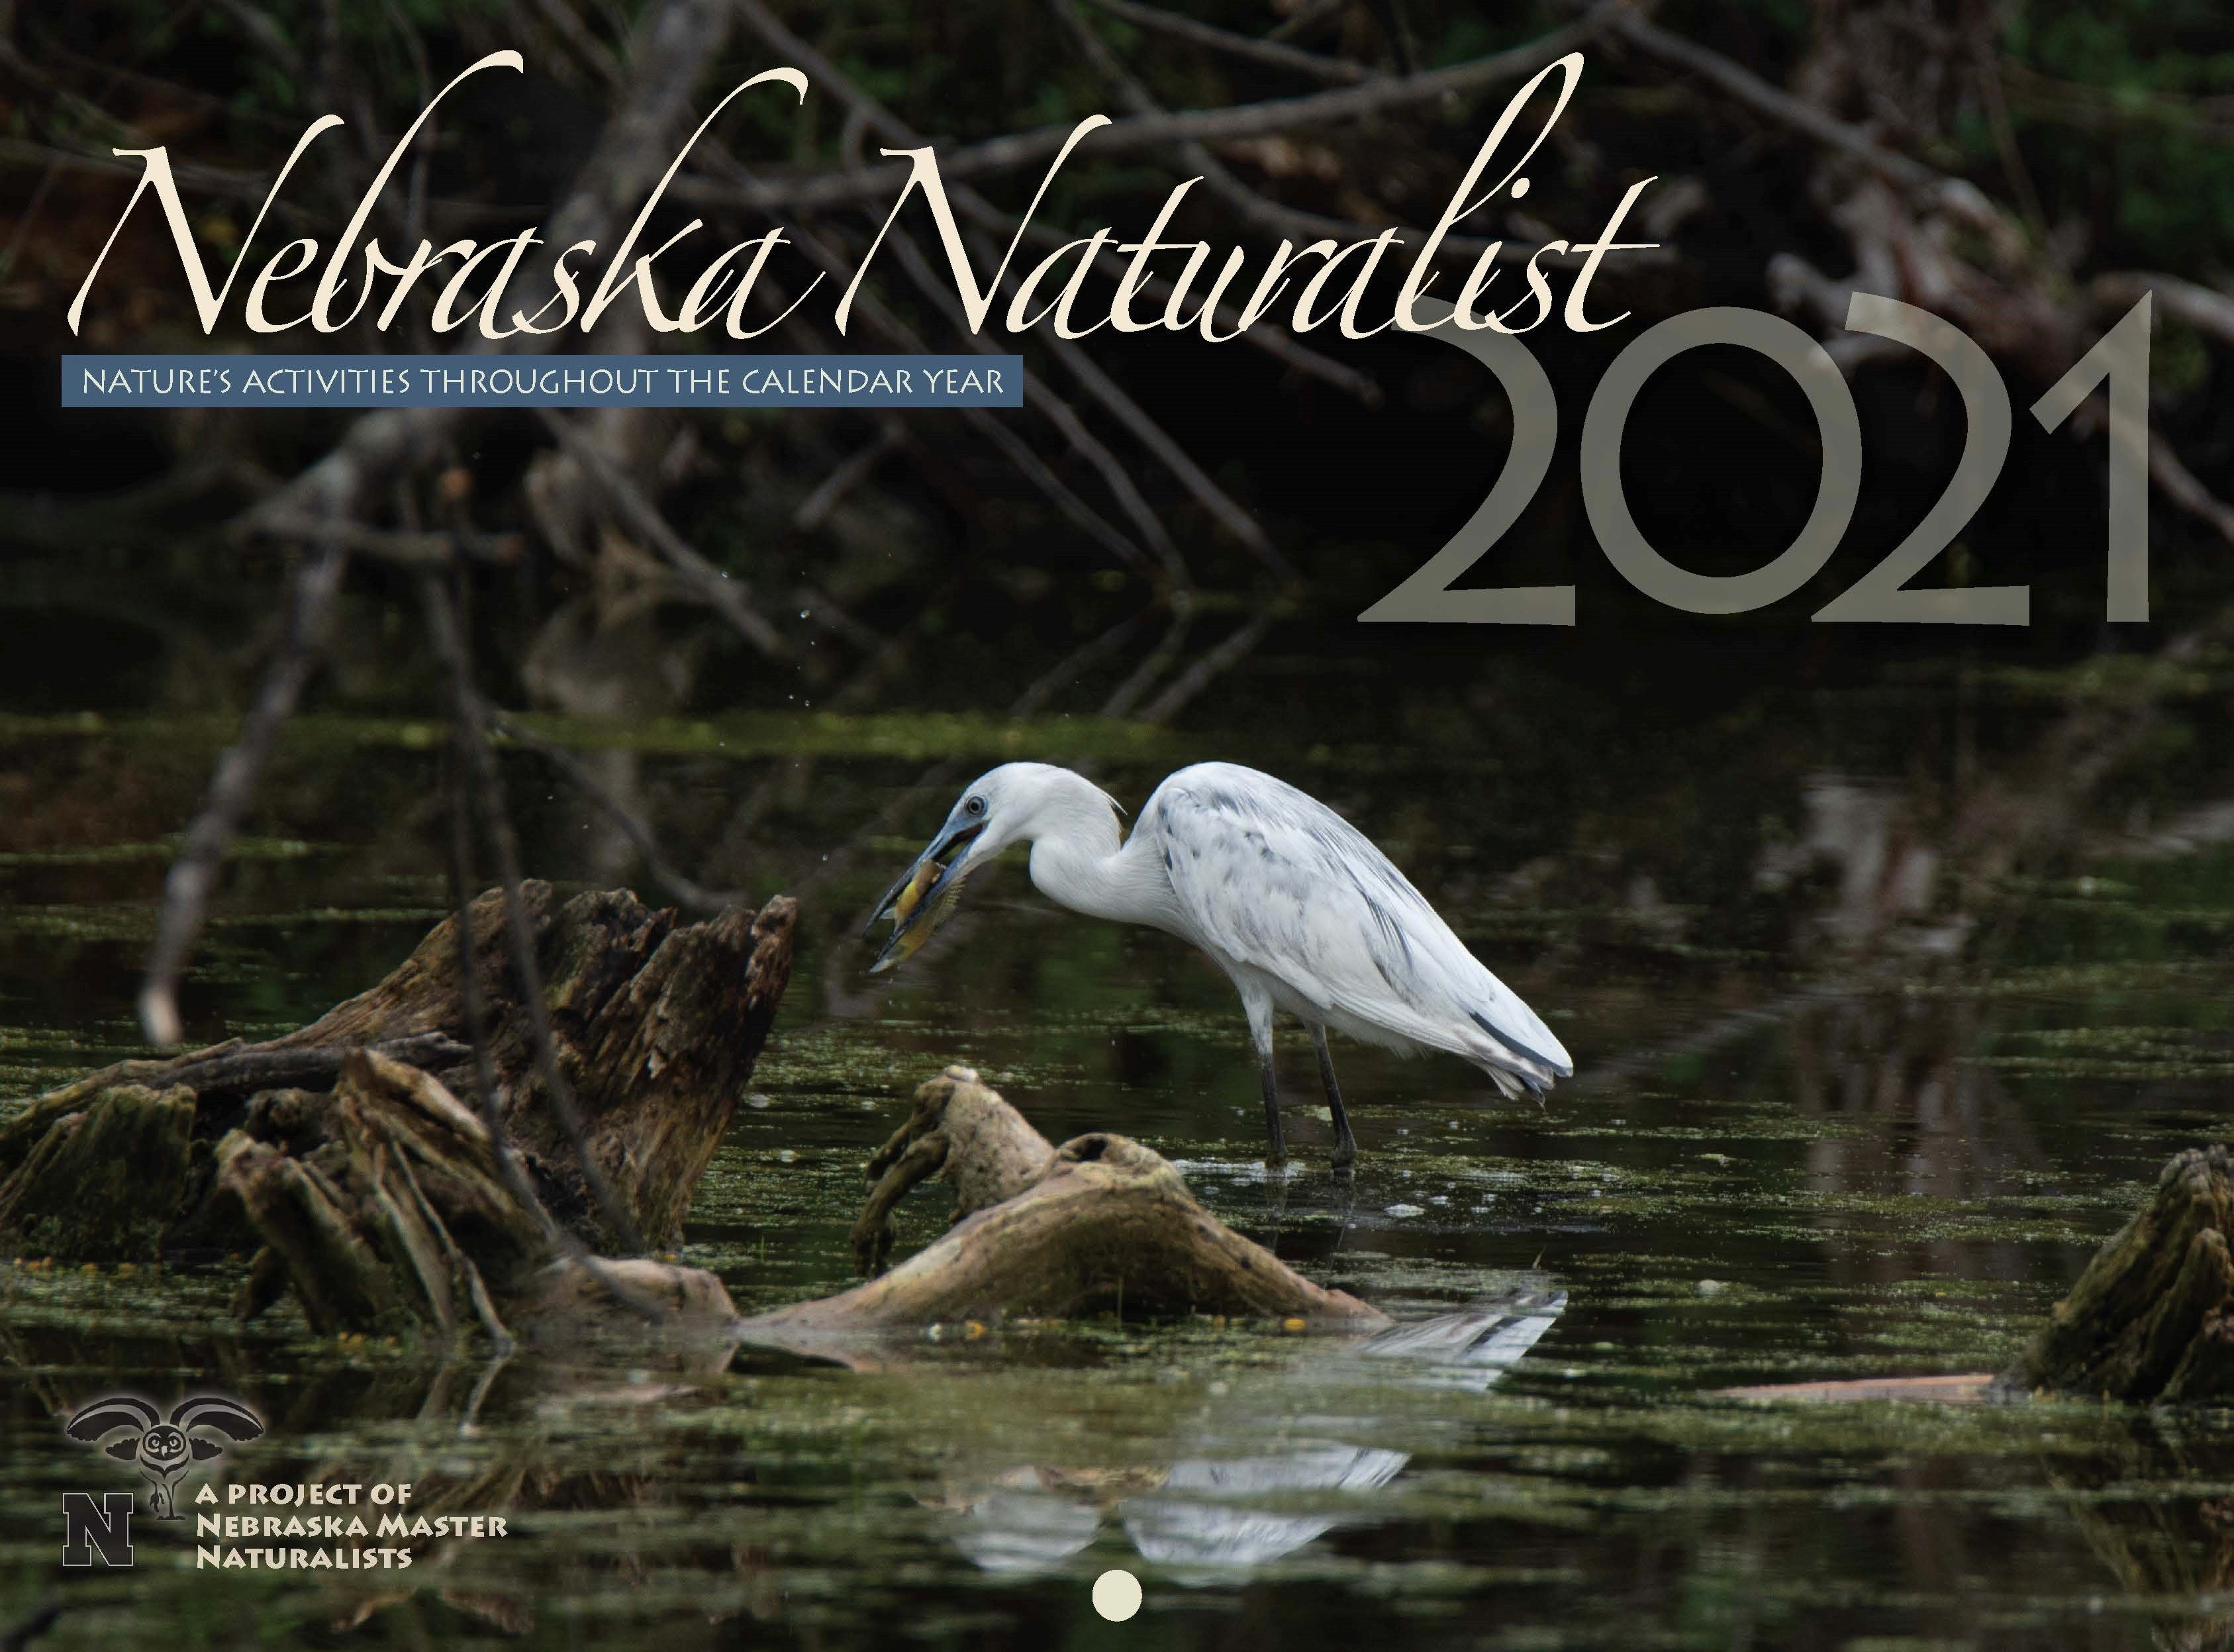 Donate To The Nebraska Master Naturalist Foundation and Receive Your Copy of the 2021 Naturalist Calendar